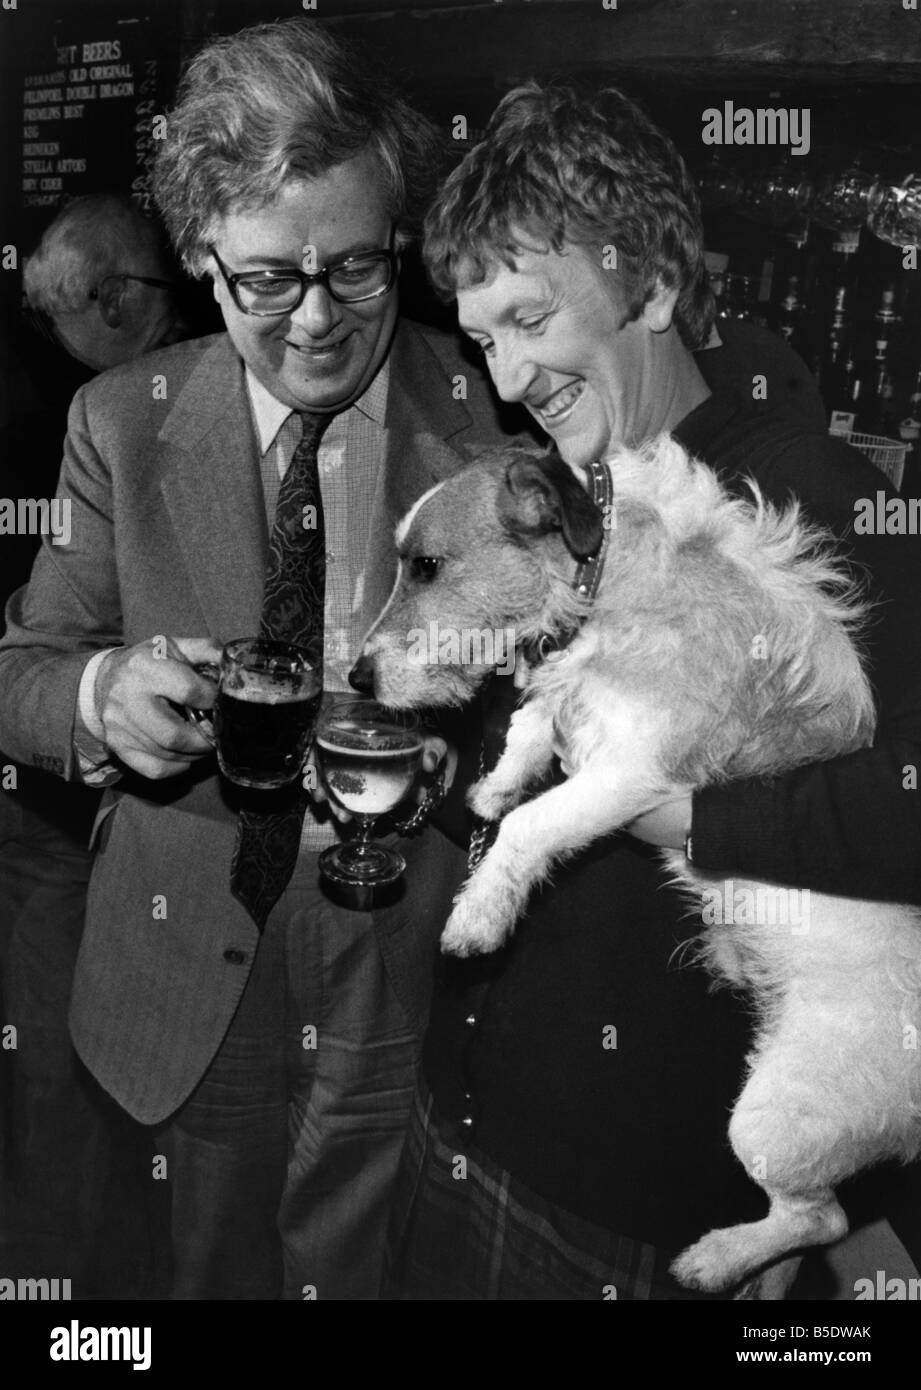 Sir Geoffrey Howe: Chancellor Sir Geoffrey Howe, his wife Lady Elspeth, and their pet dog Budget, surprised regulars - Stock Image